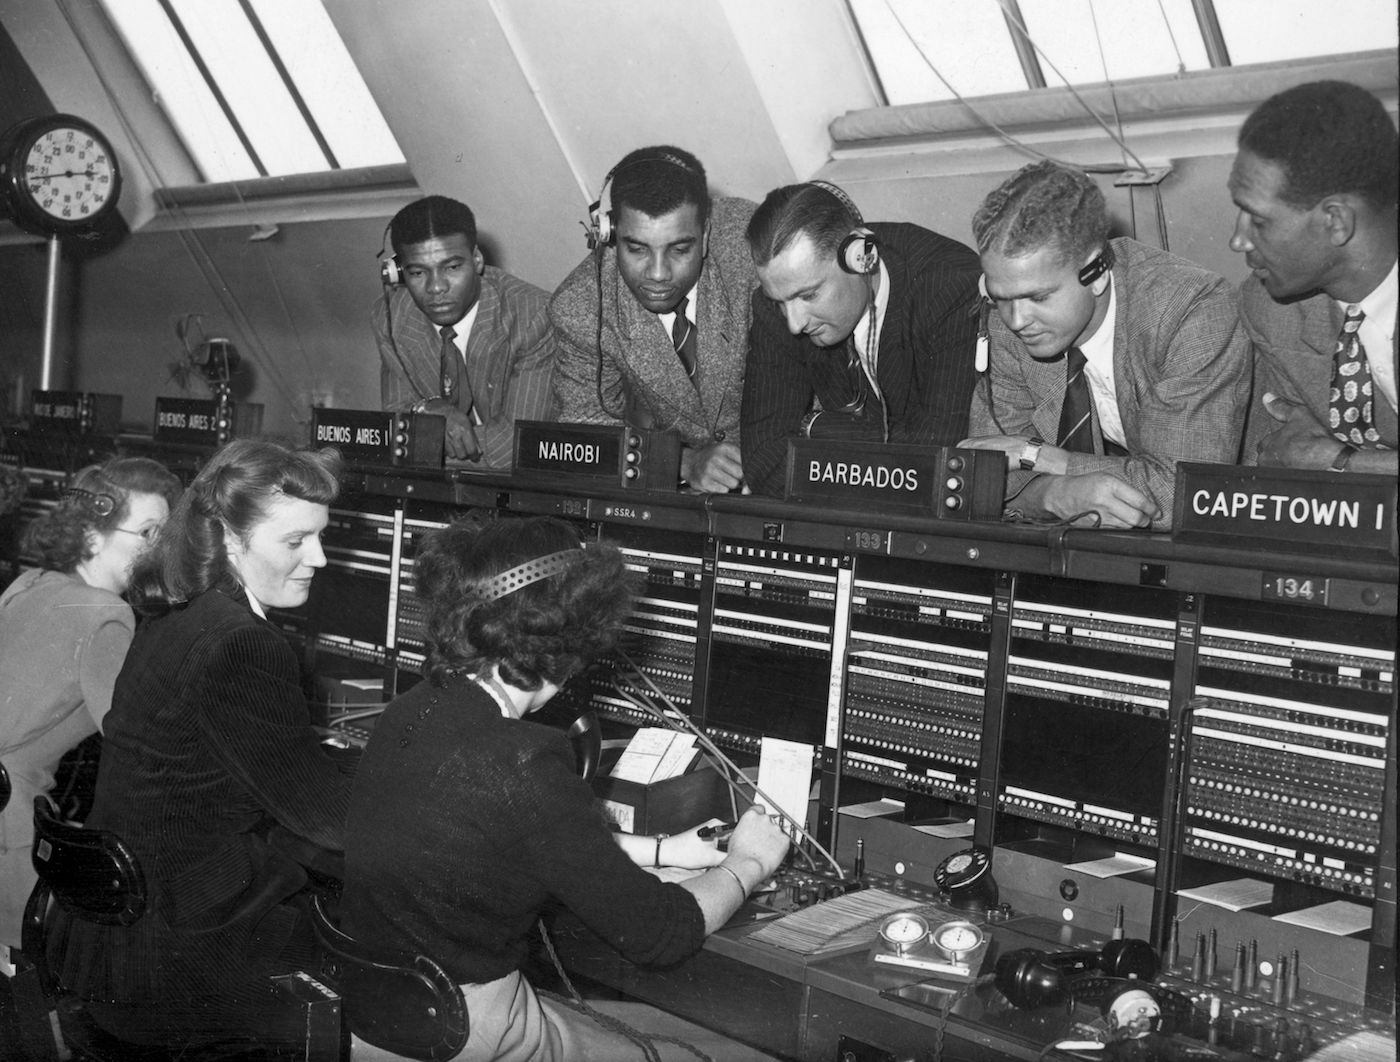 Everton Weekes, Clyde Walcott, John Goddard, Hines Johnson and Foffie Williams (from left) get a crash course in cross-country dialling at the International Exchange in London, during their 1950 tour of England